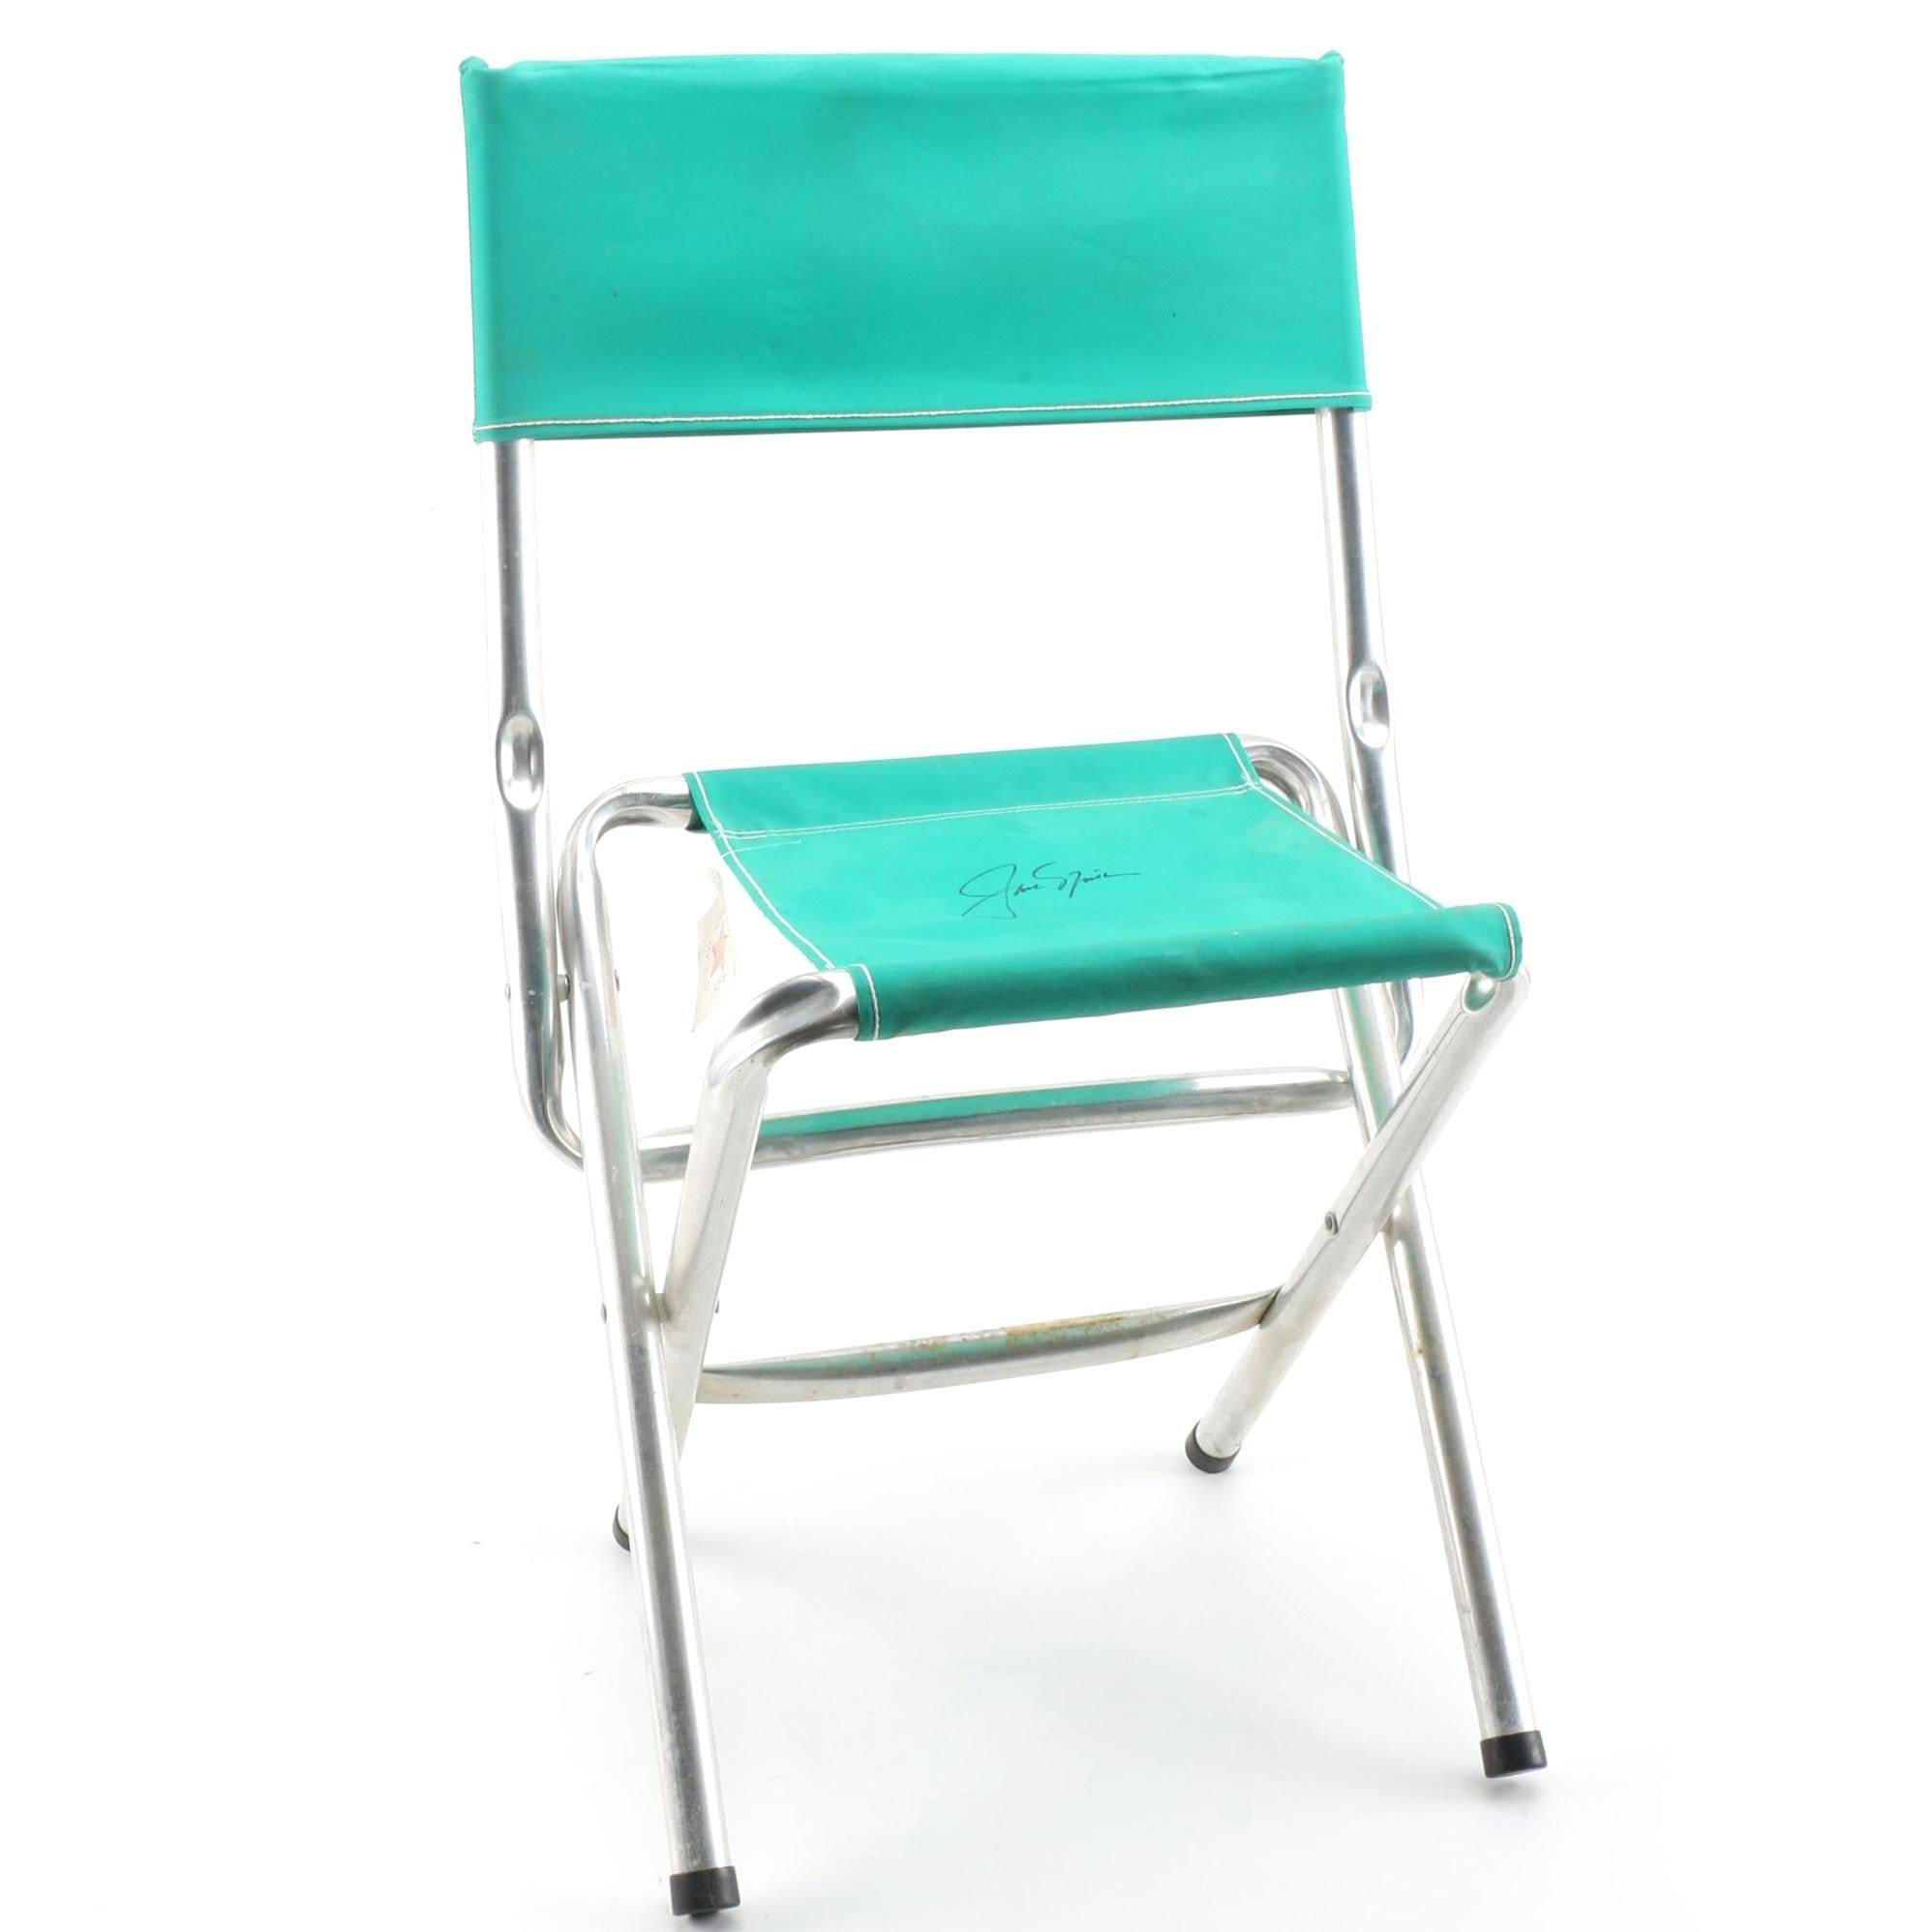 Jack Nicklaus Autographed Masters Folding Chair